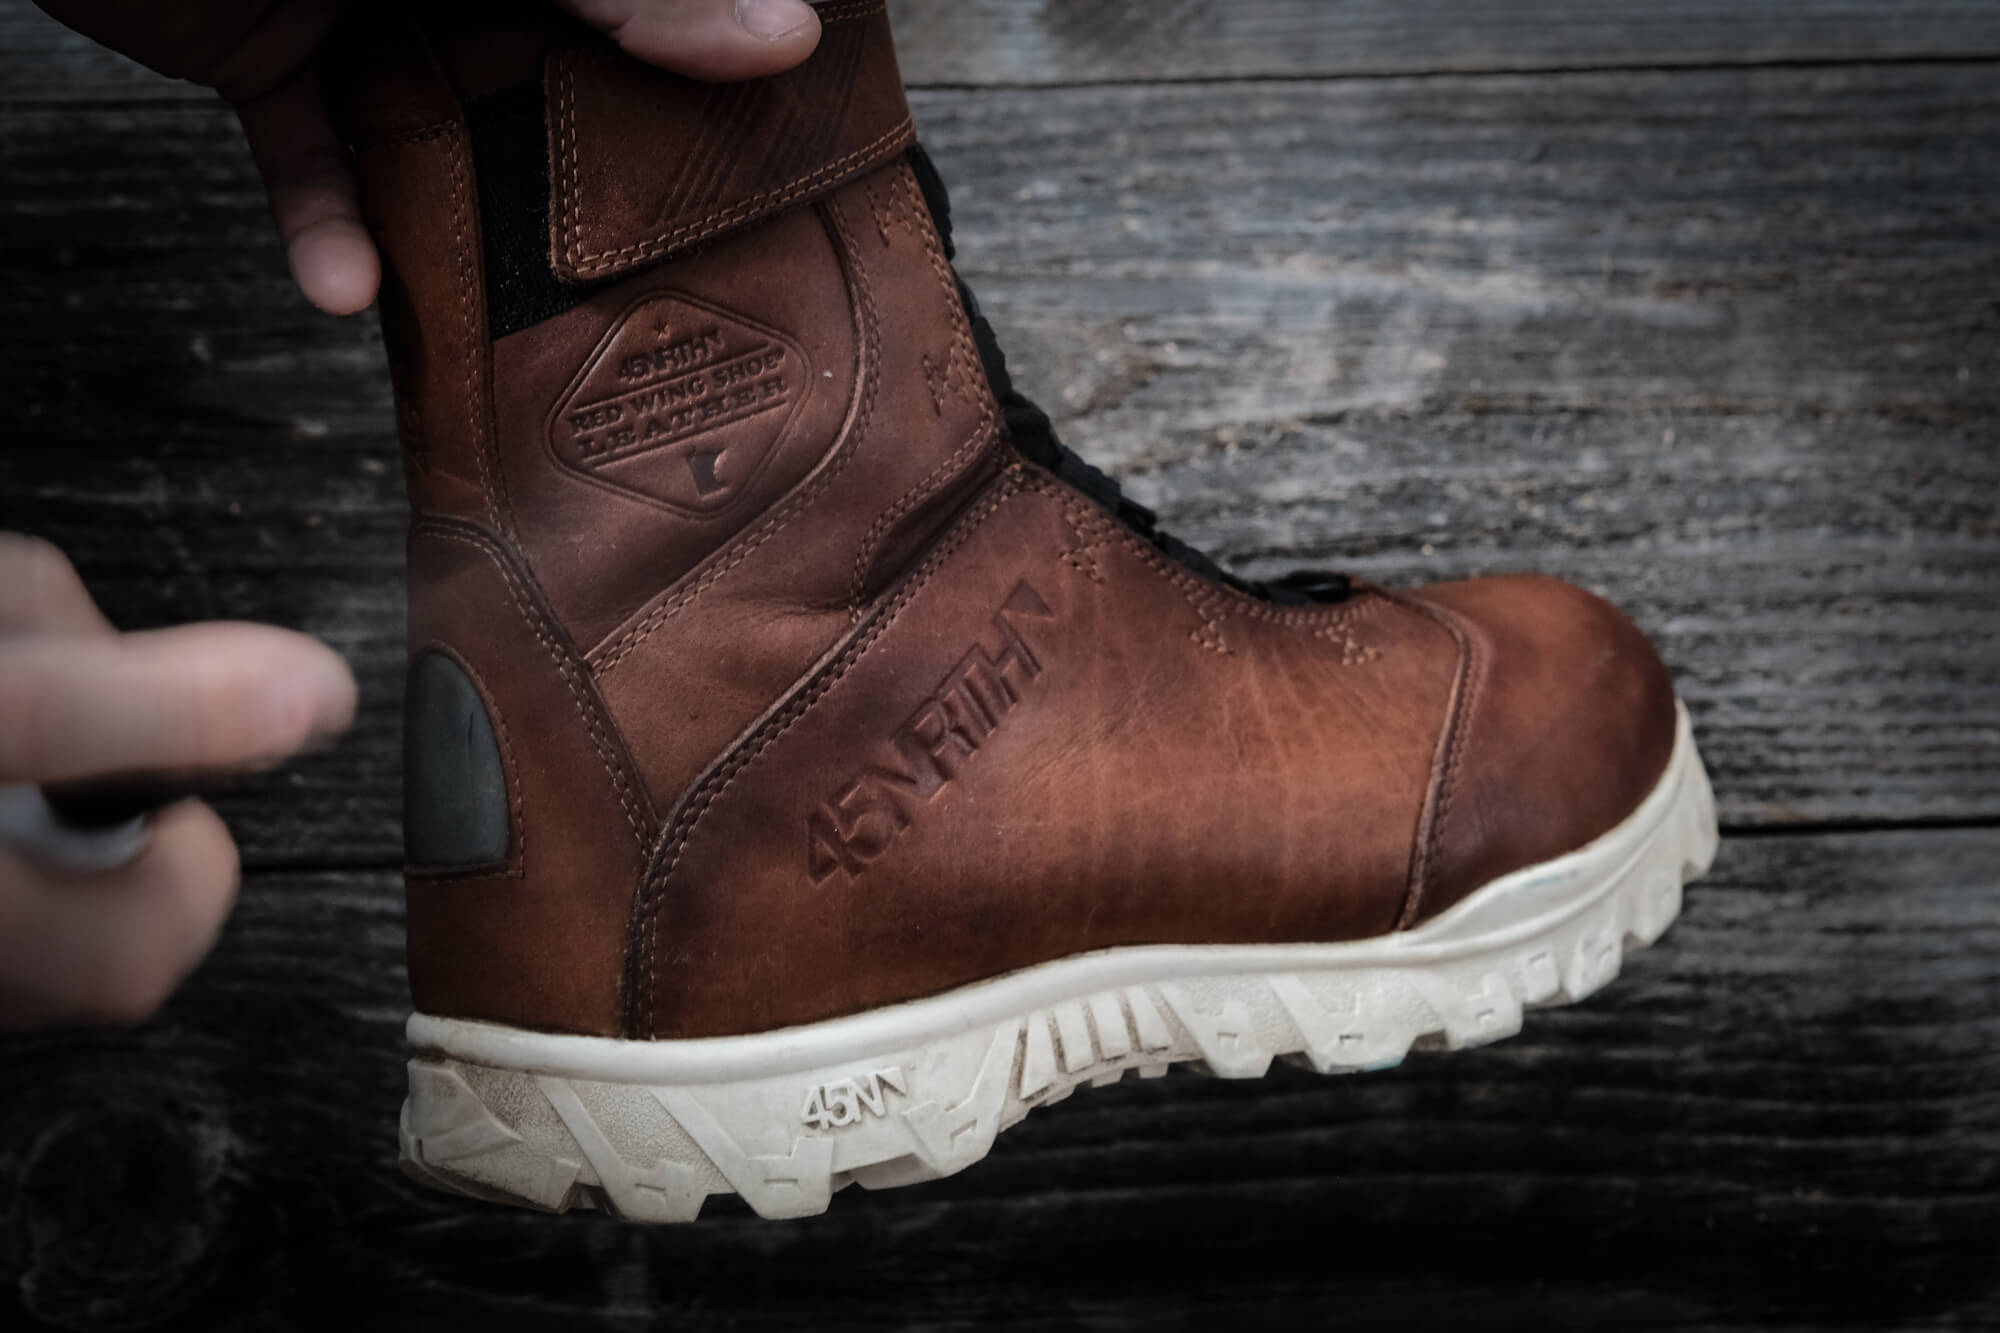 Spraying the leather of the 45NRTH Wolvhammer cycling boot with Red Wing Leather Protector